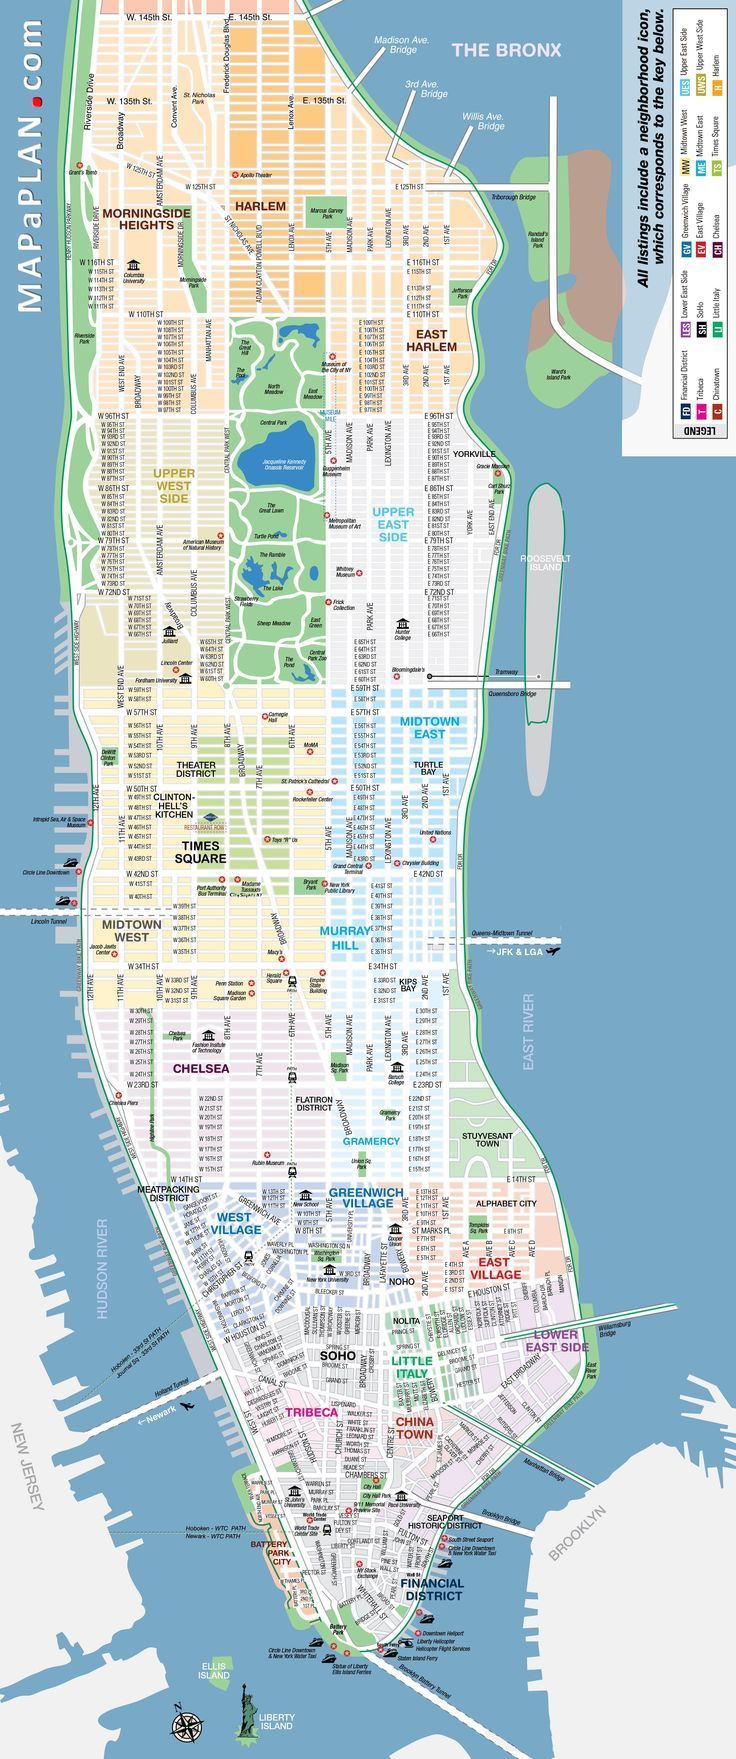 Mapaplan Com Travel Travelling Have More Information On Our Site Http Storelatina Com Travelling Taisteal Iind Map Of New York Ny City New York Vacation